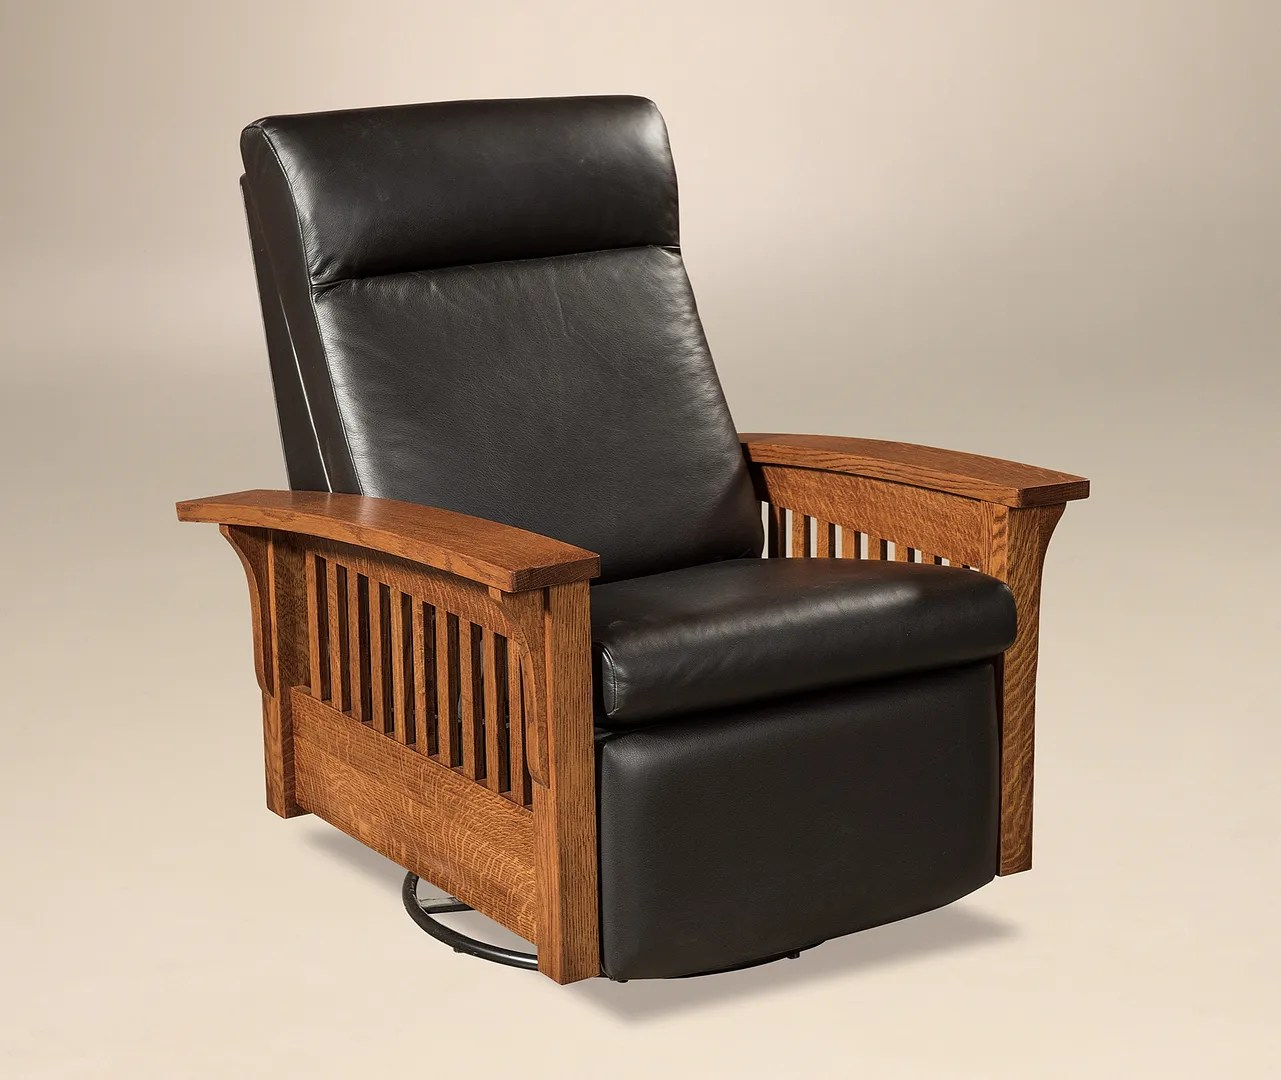 Swivel Recliner Chairs Details About Amish Mission Hoosier Glider Swivel Recliner Chair Solid Wood Leather